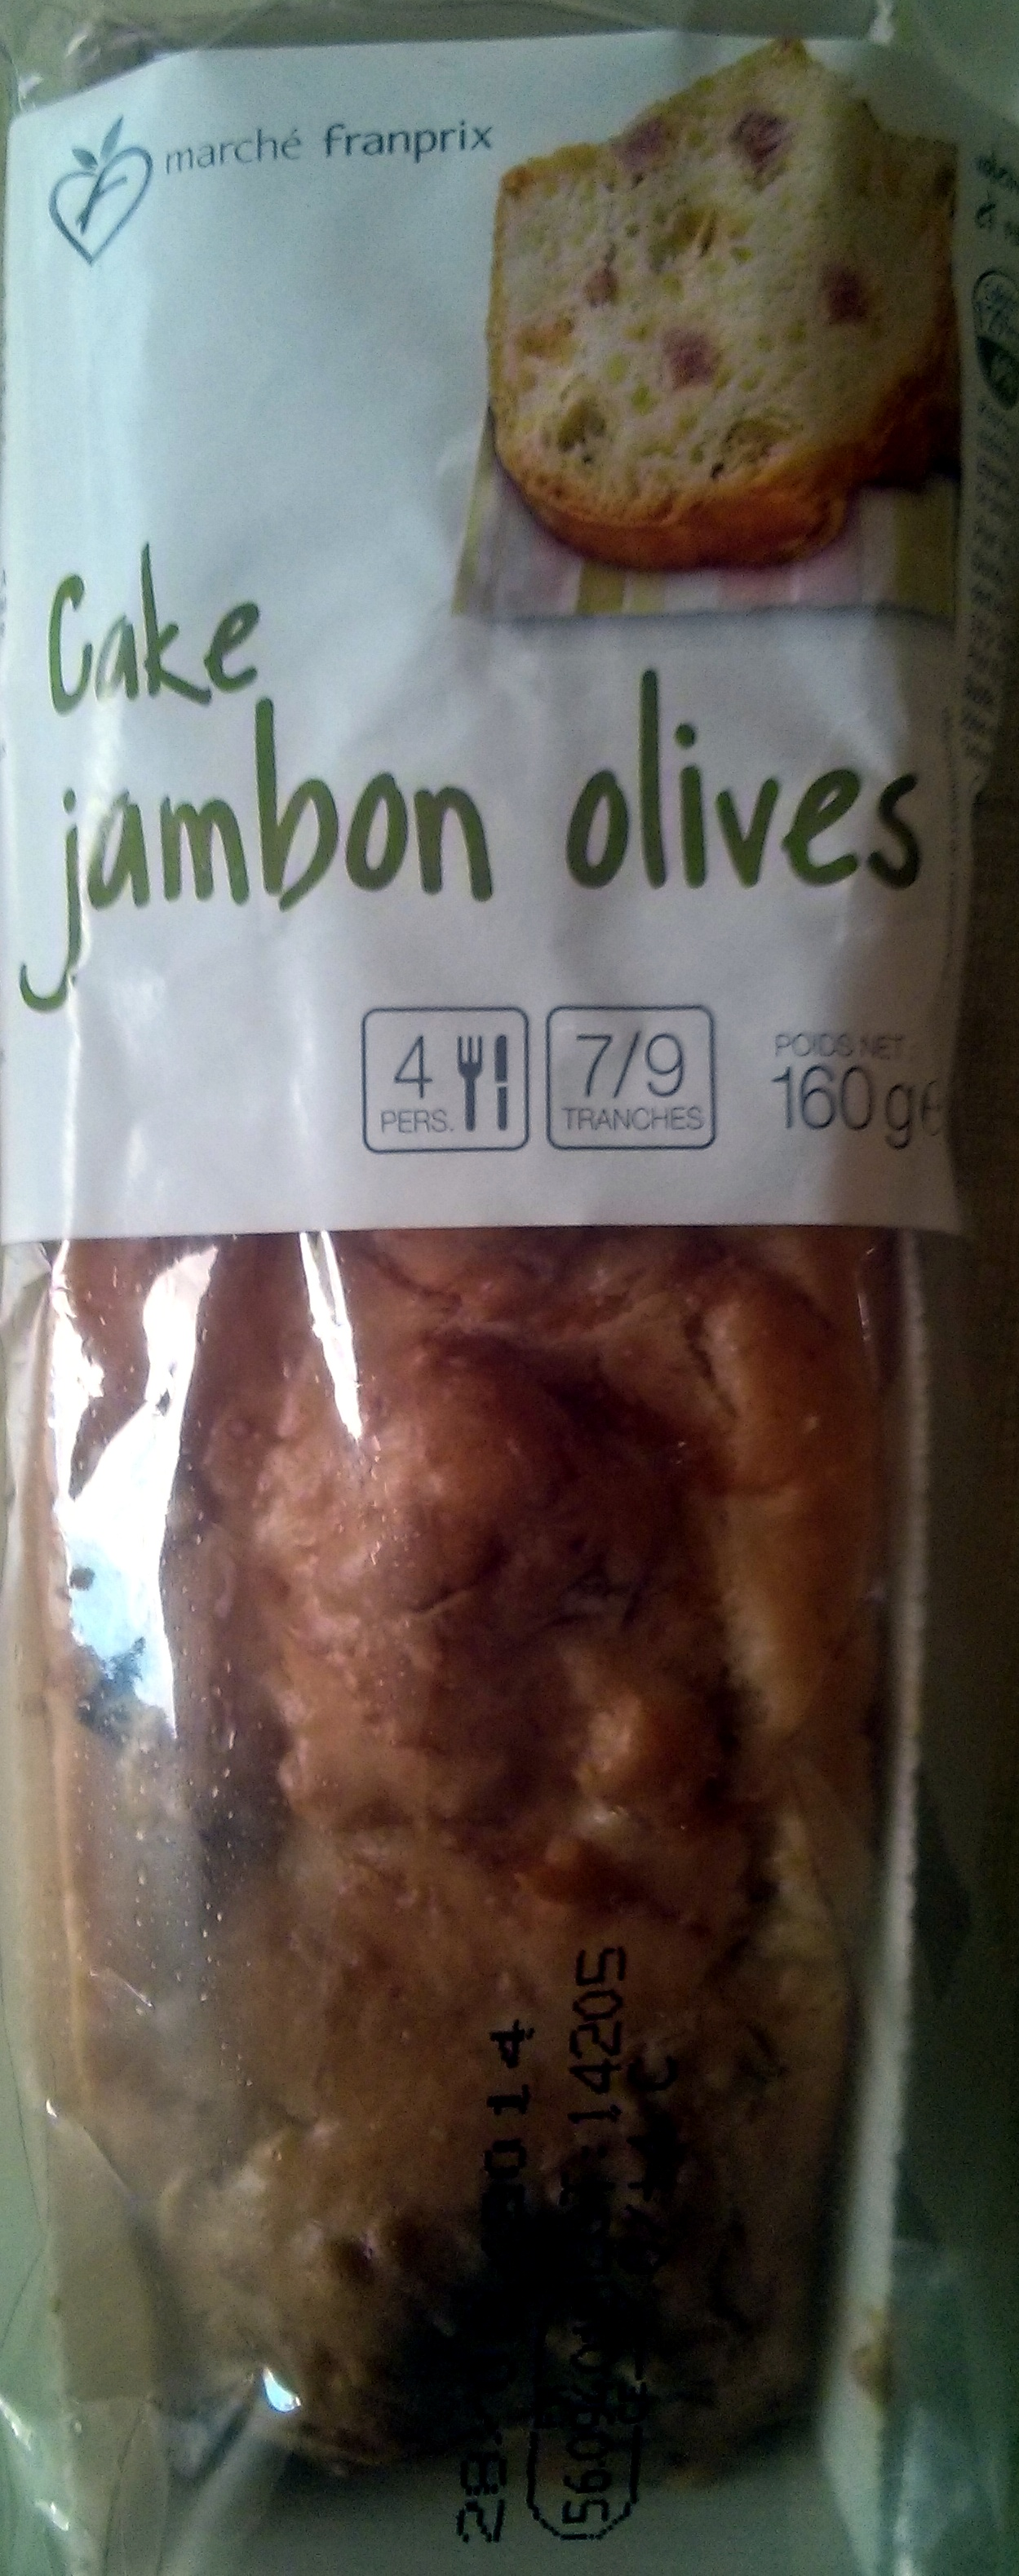 Cake Jambon Olives - Product - fr